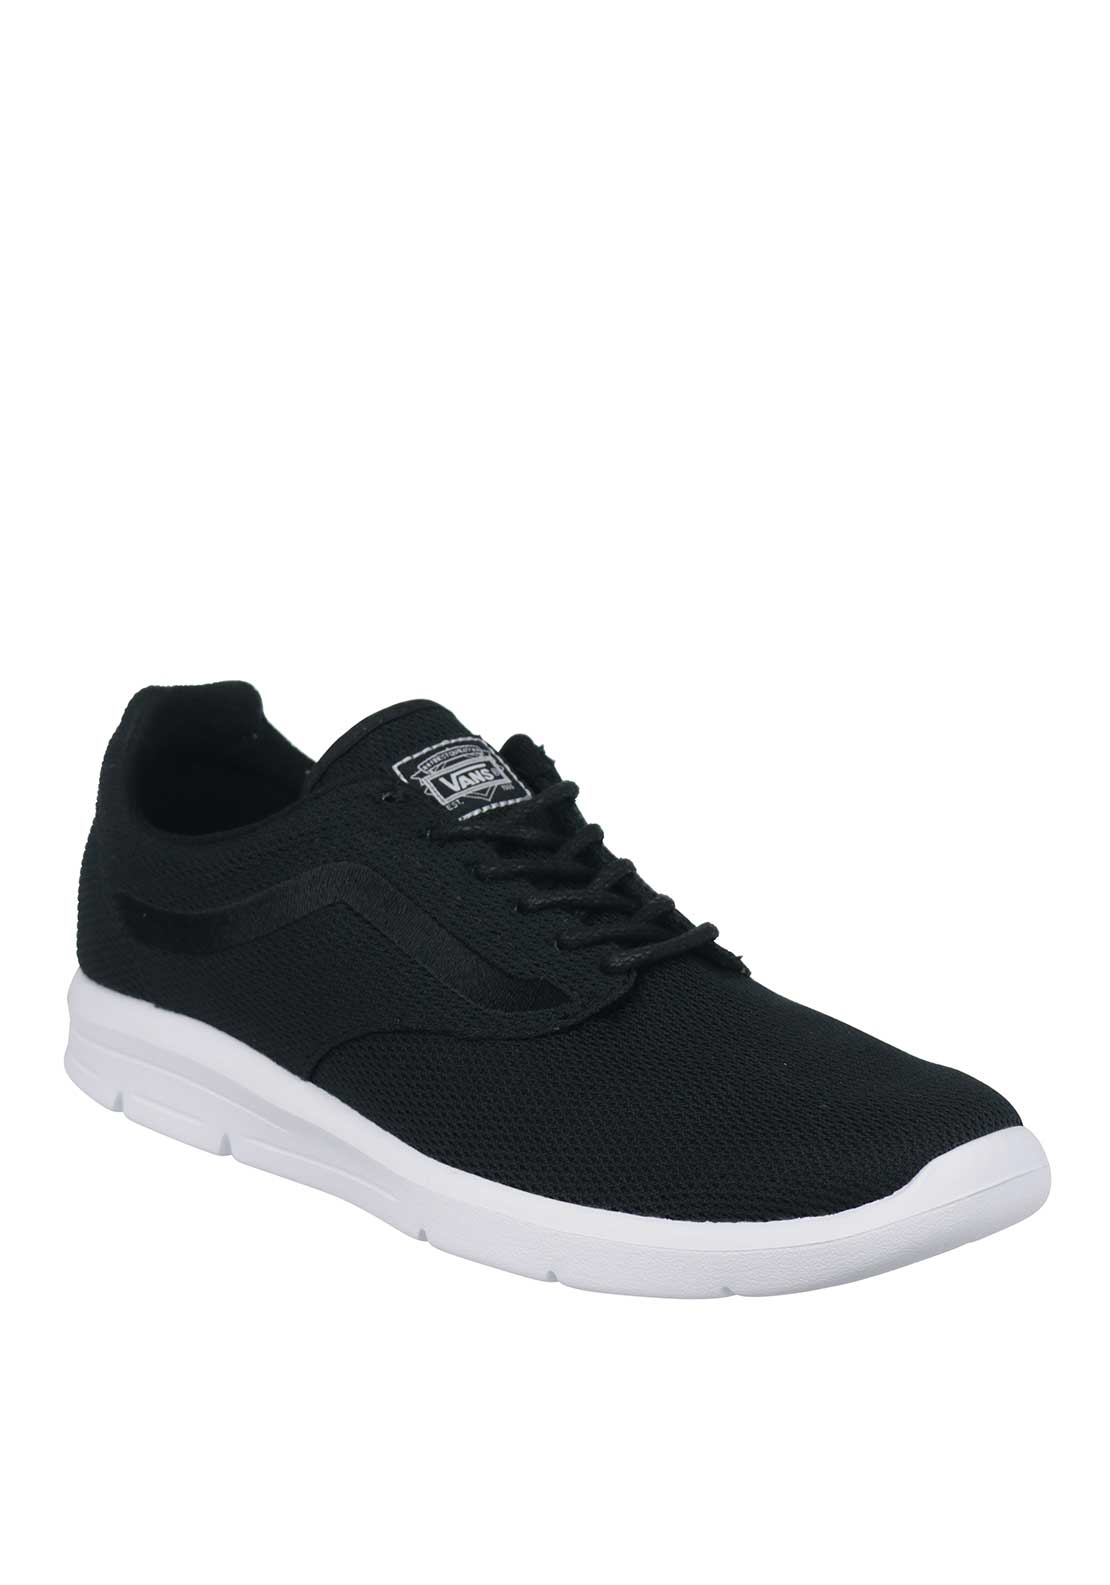 Vans Mens UltraCush Lite Mesh Trainer, Black